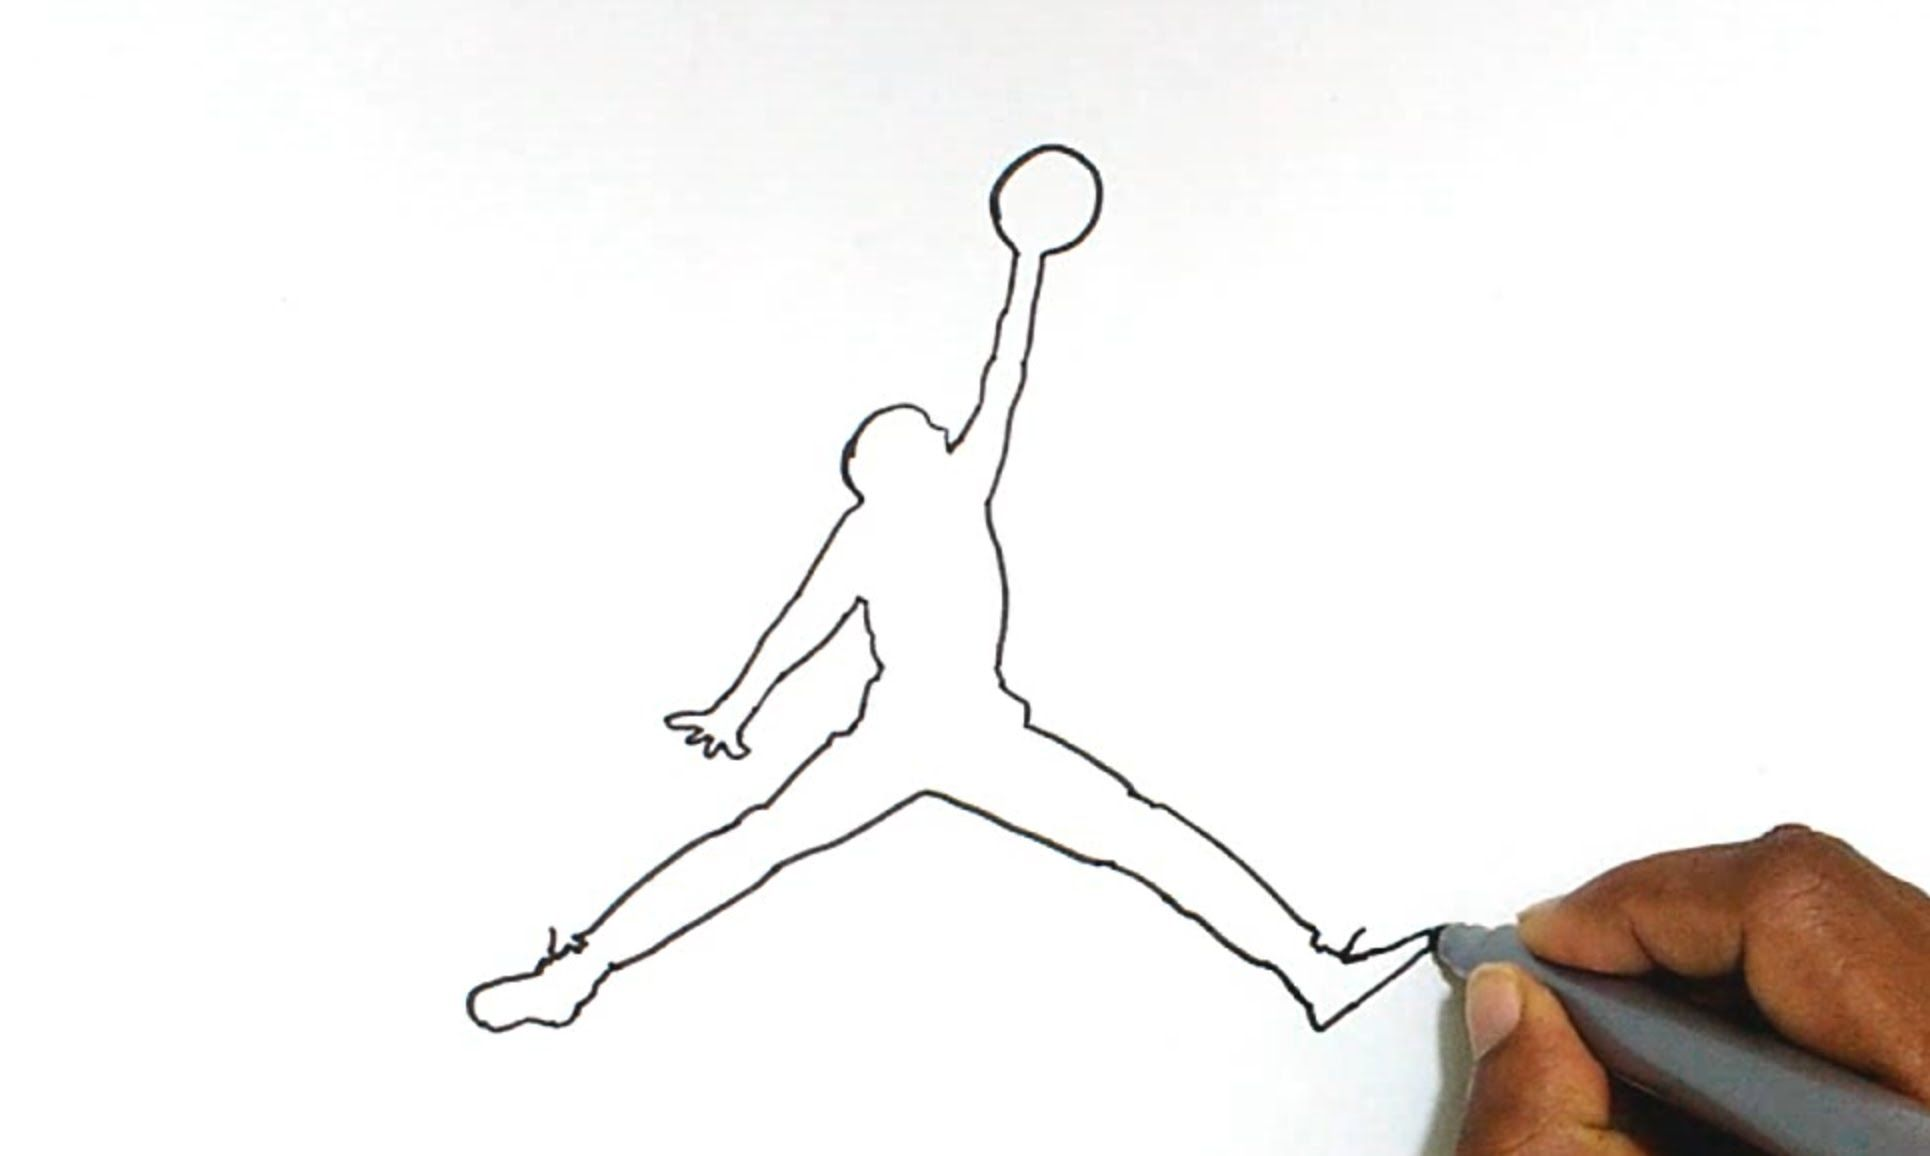 Learn how to draw the Jordan Jumpman logo in this step by step